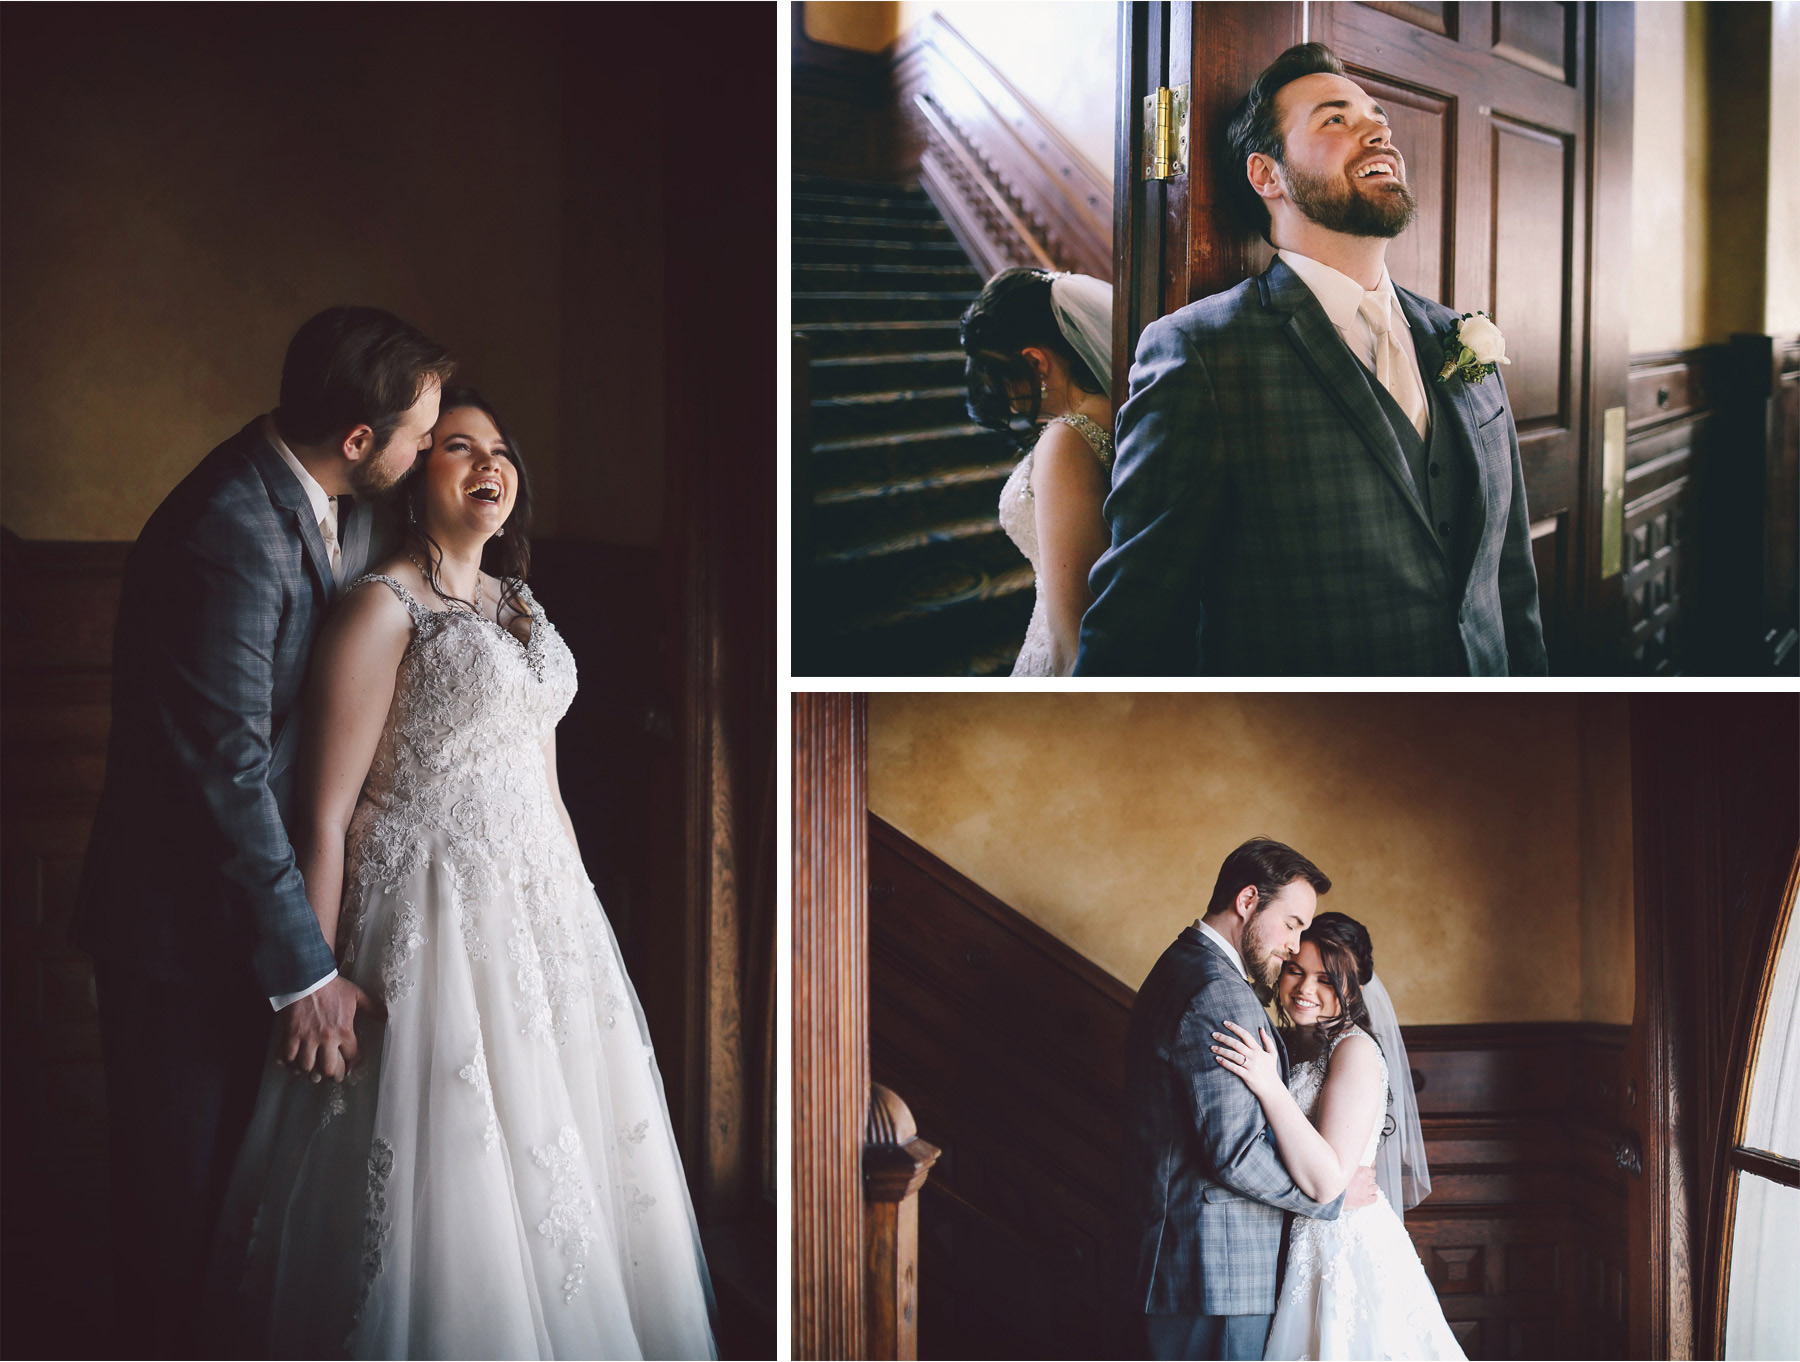 05-Minneapolis-Wedding-Photography-by-Vick-Photography-Historic-Concord-Exchange-First-Look-Rachael-and-Benjamin.jpg